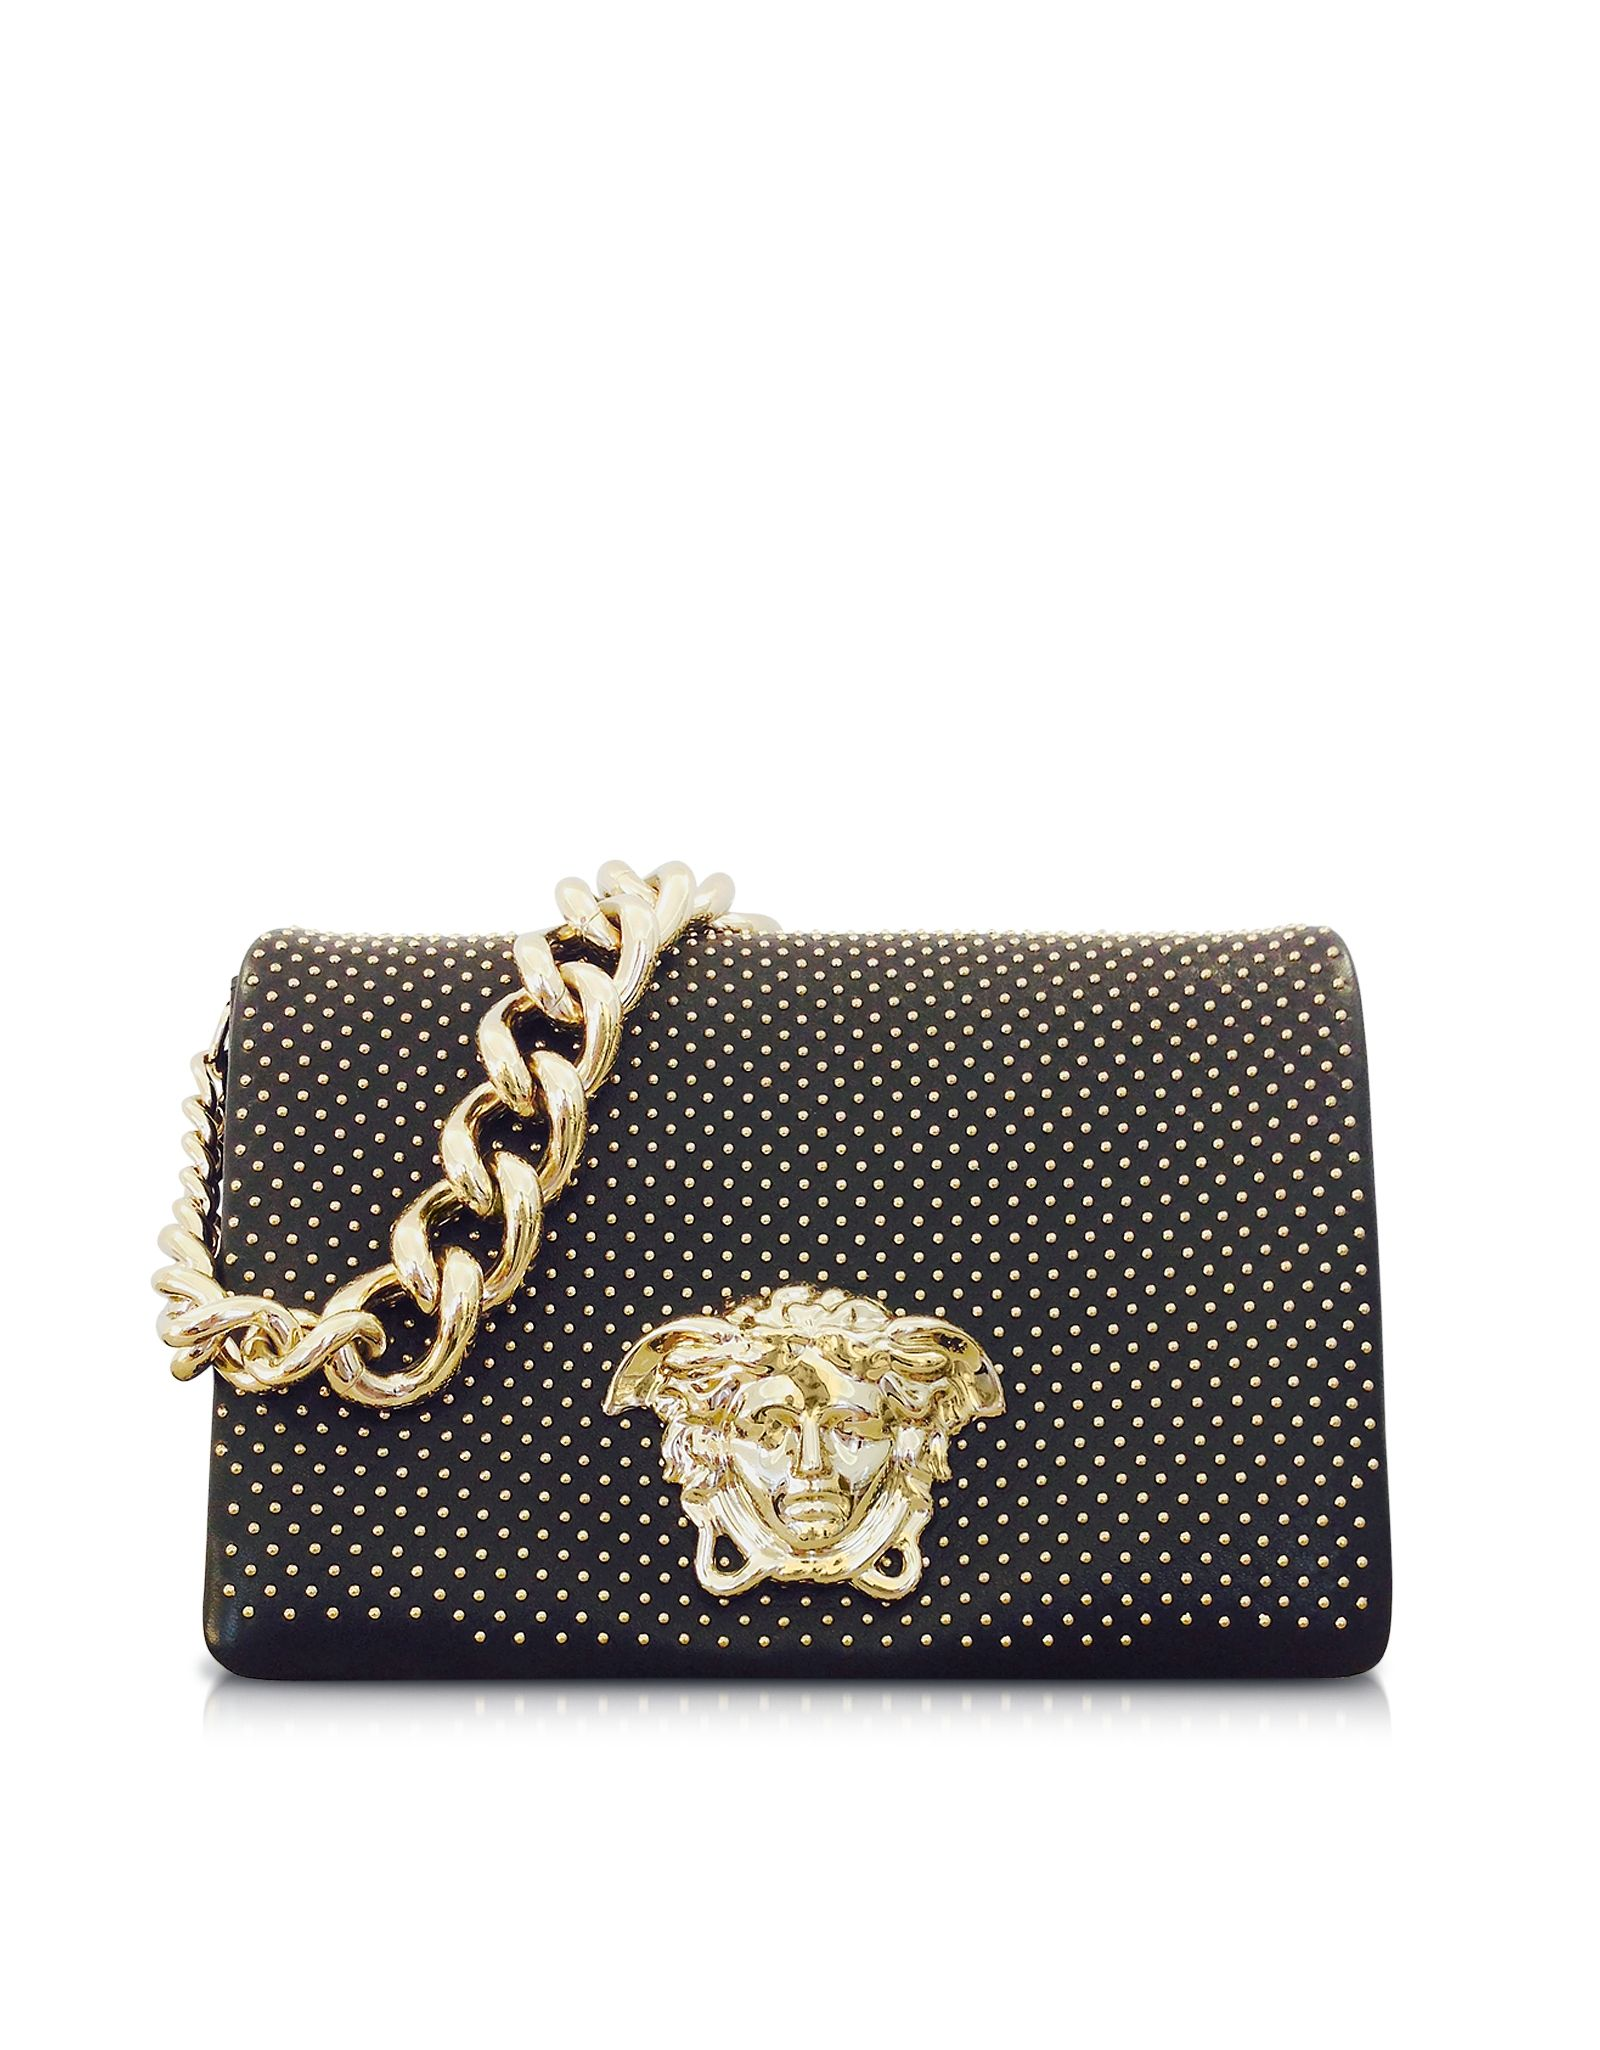 0c321a2415e2 Versace Medusa Logo Black Leather Shoulder Bag w Golden Studs at FORZIERI